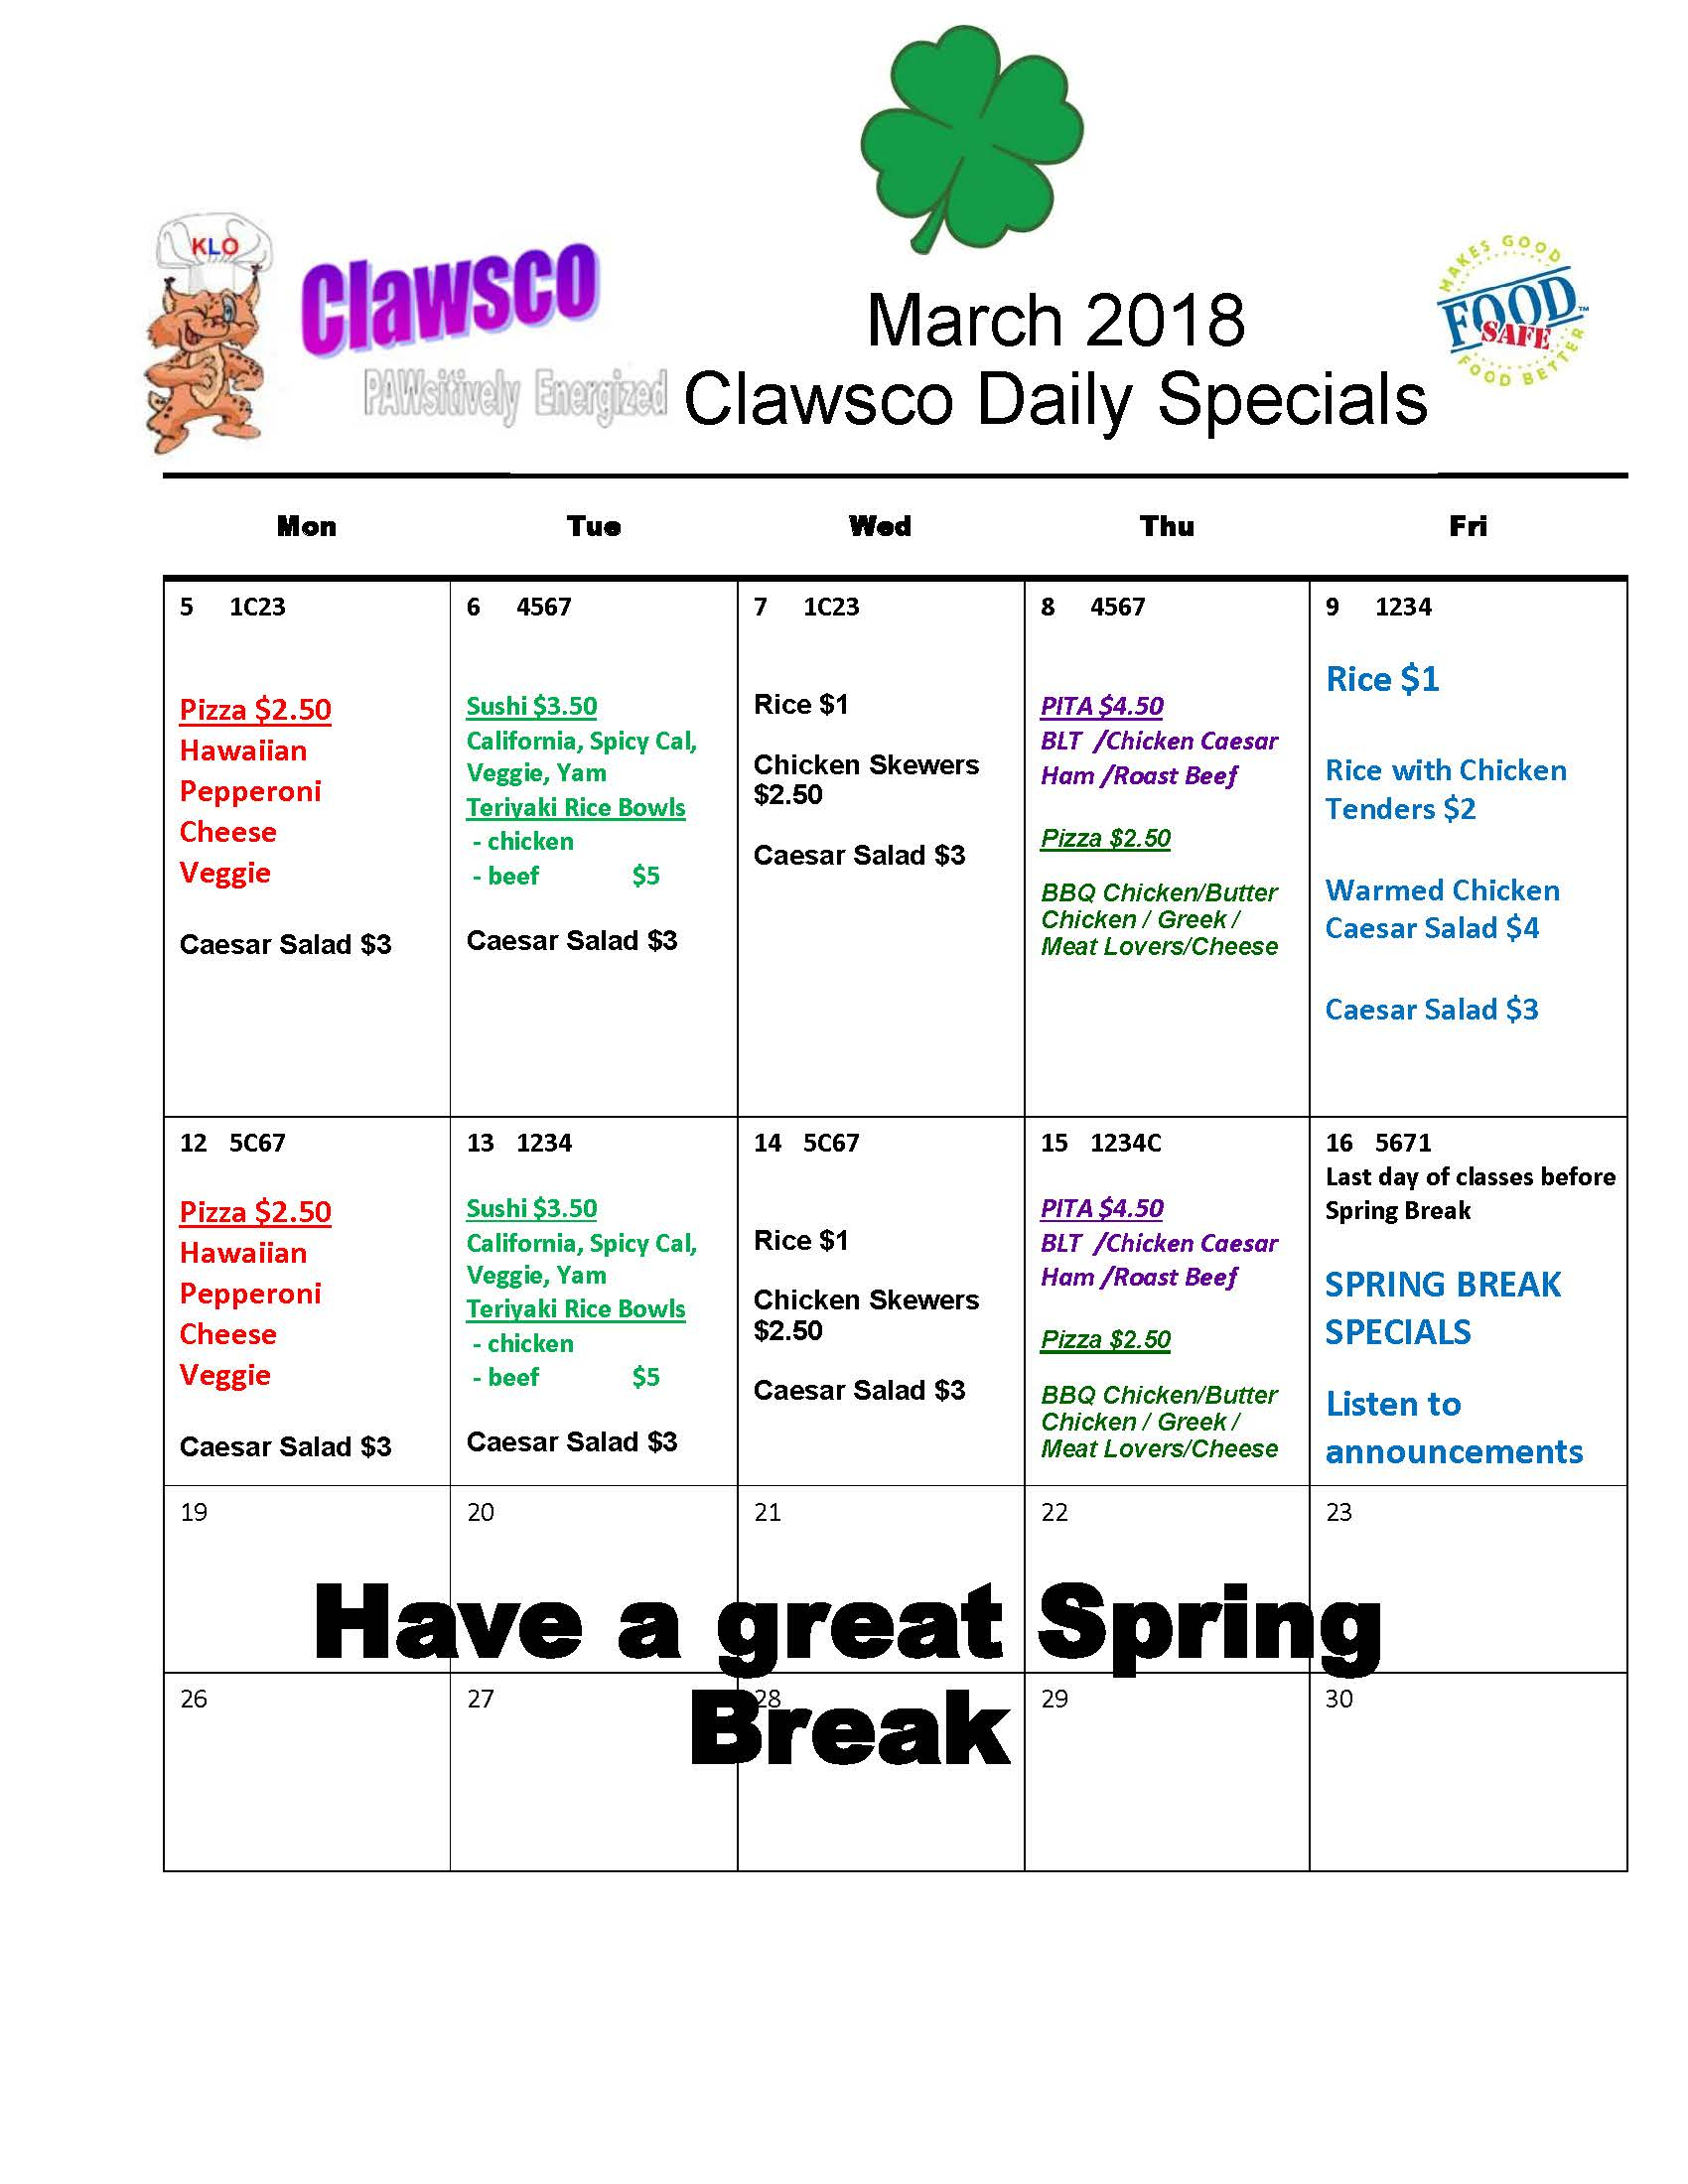 March 2018 CLAWSCO menu.jpg